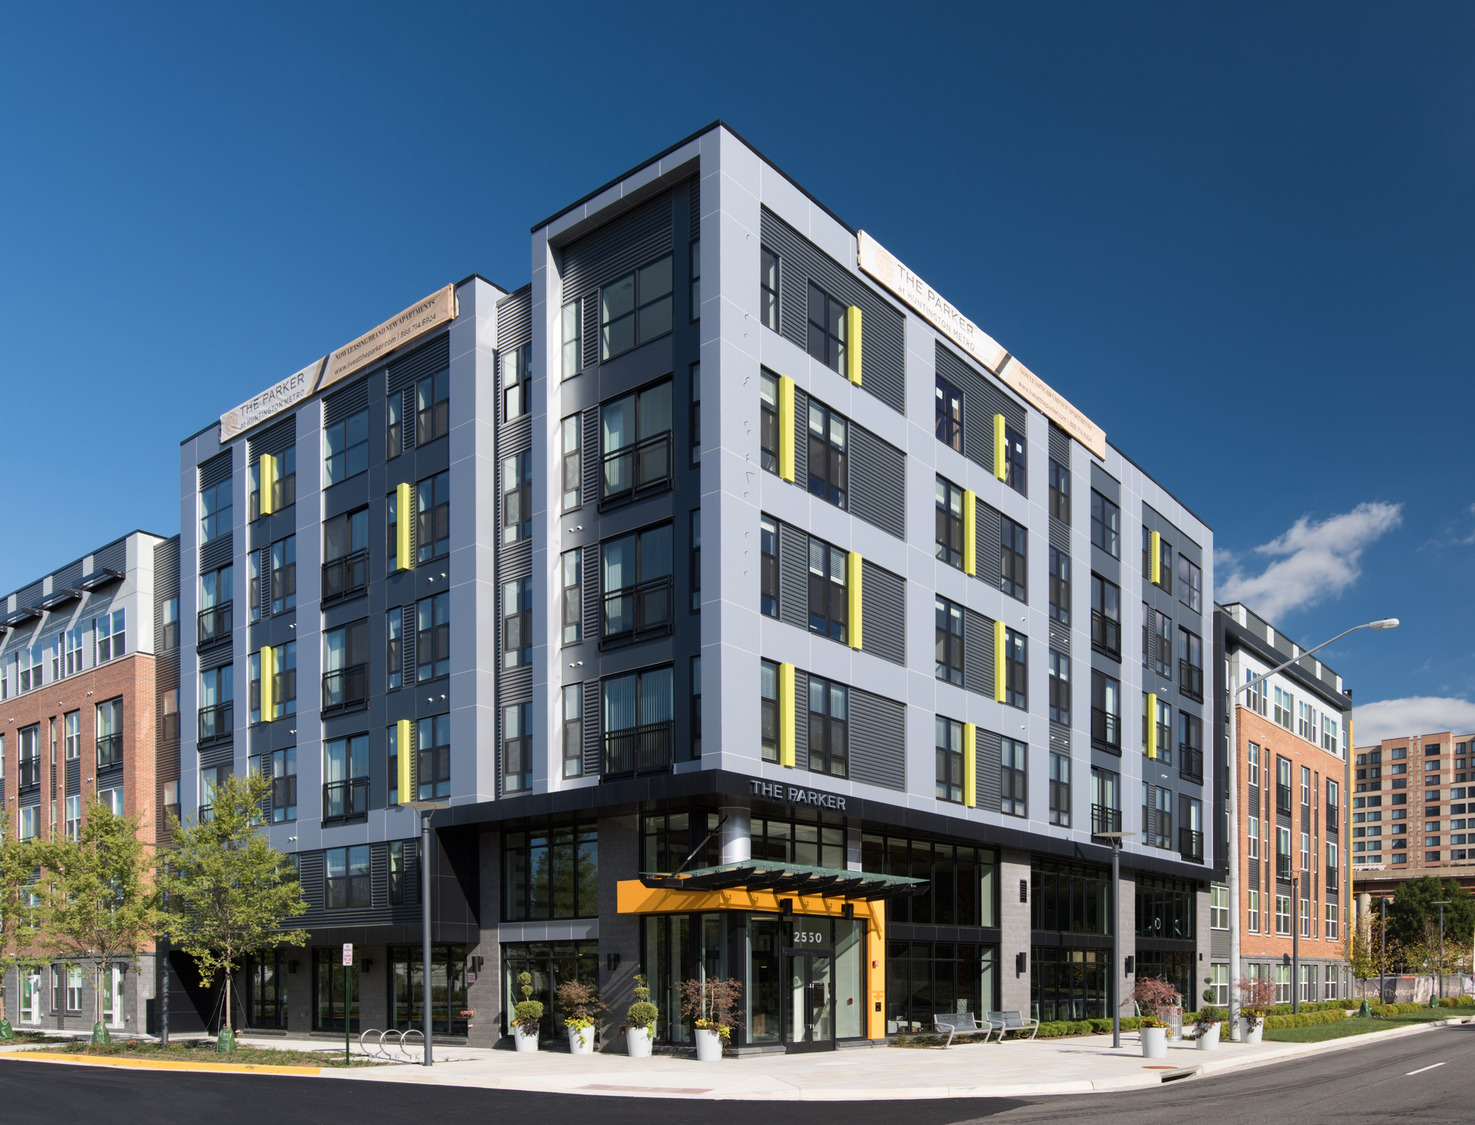 CBG builds The Parker, a 360-Unit Market-Rate Apartment Community with Amenities in Alexandria, VA